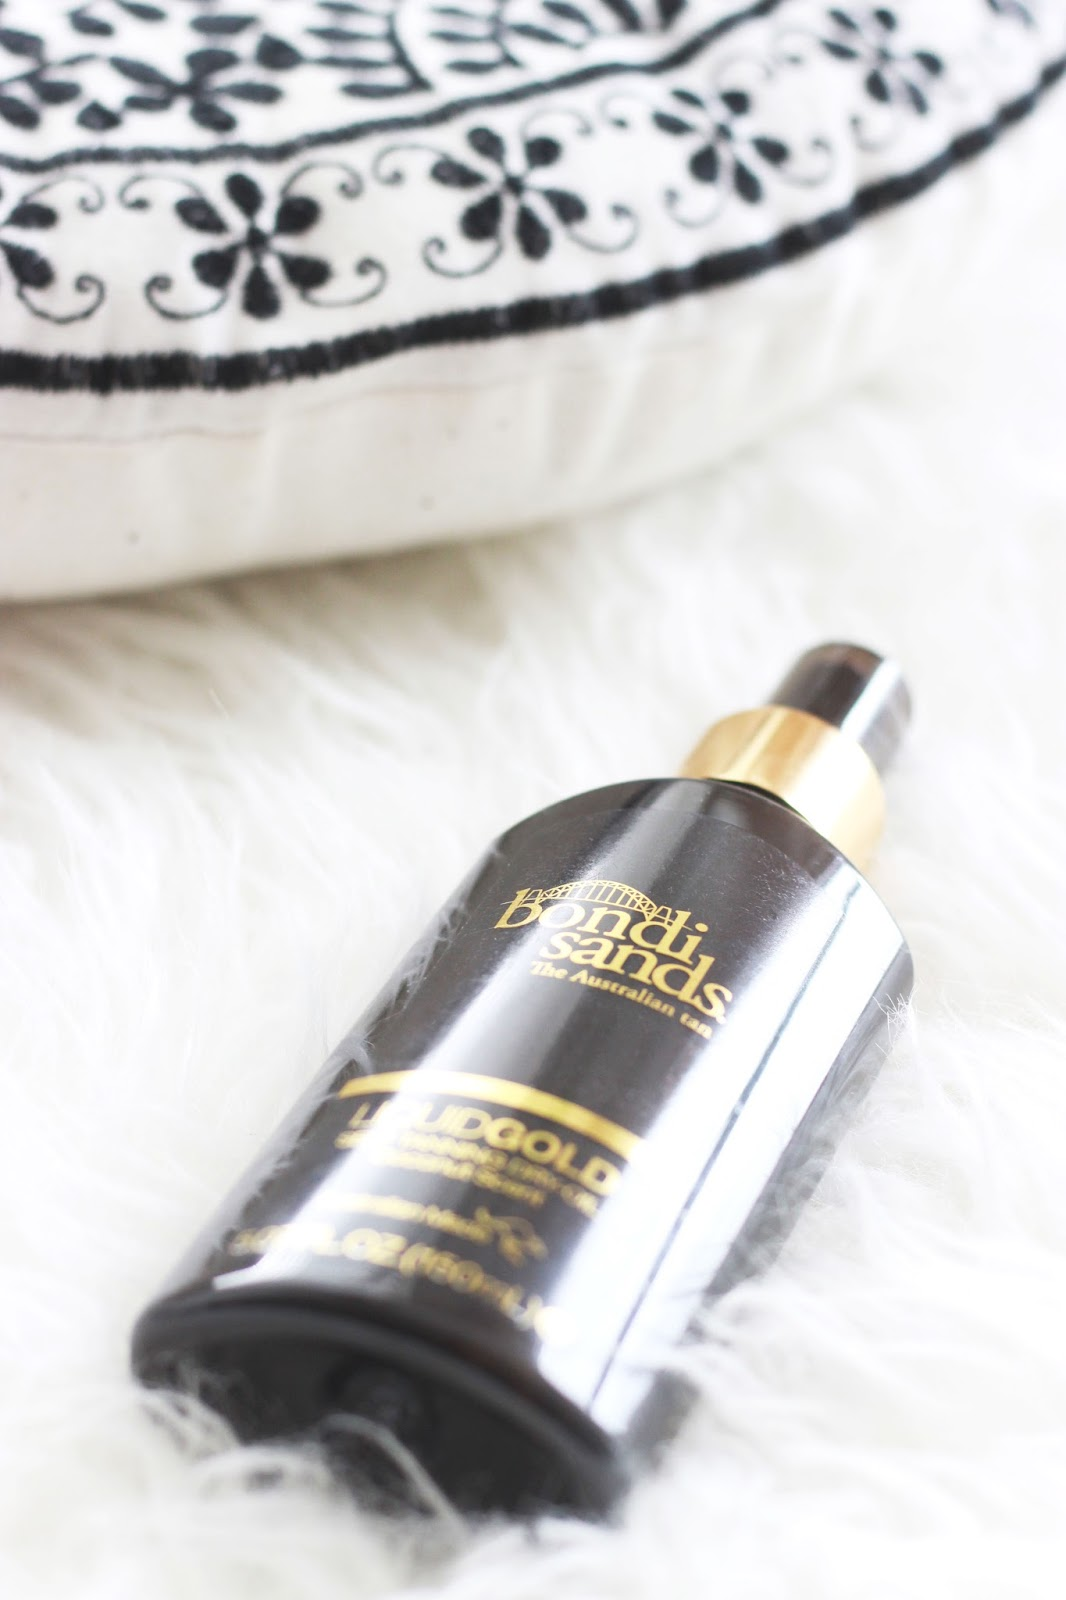 Bondi Sands Liquid Gold Tan Oil